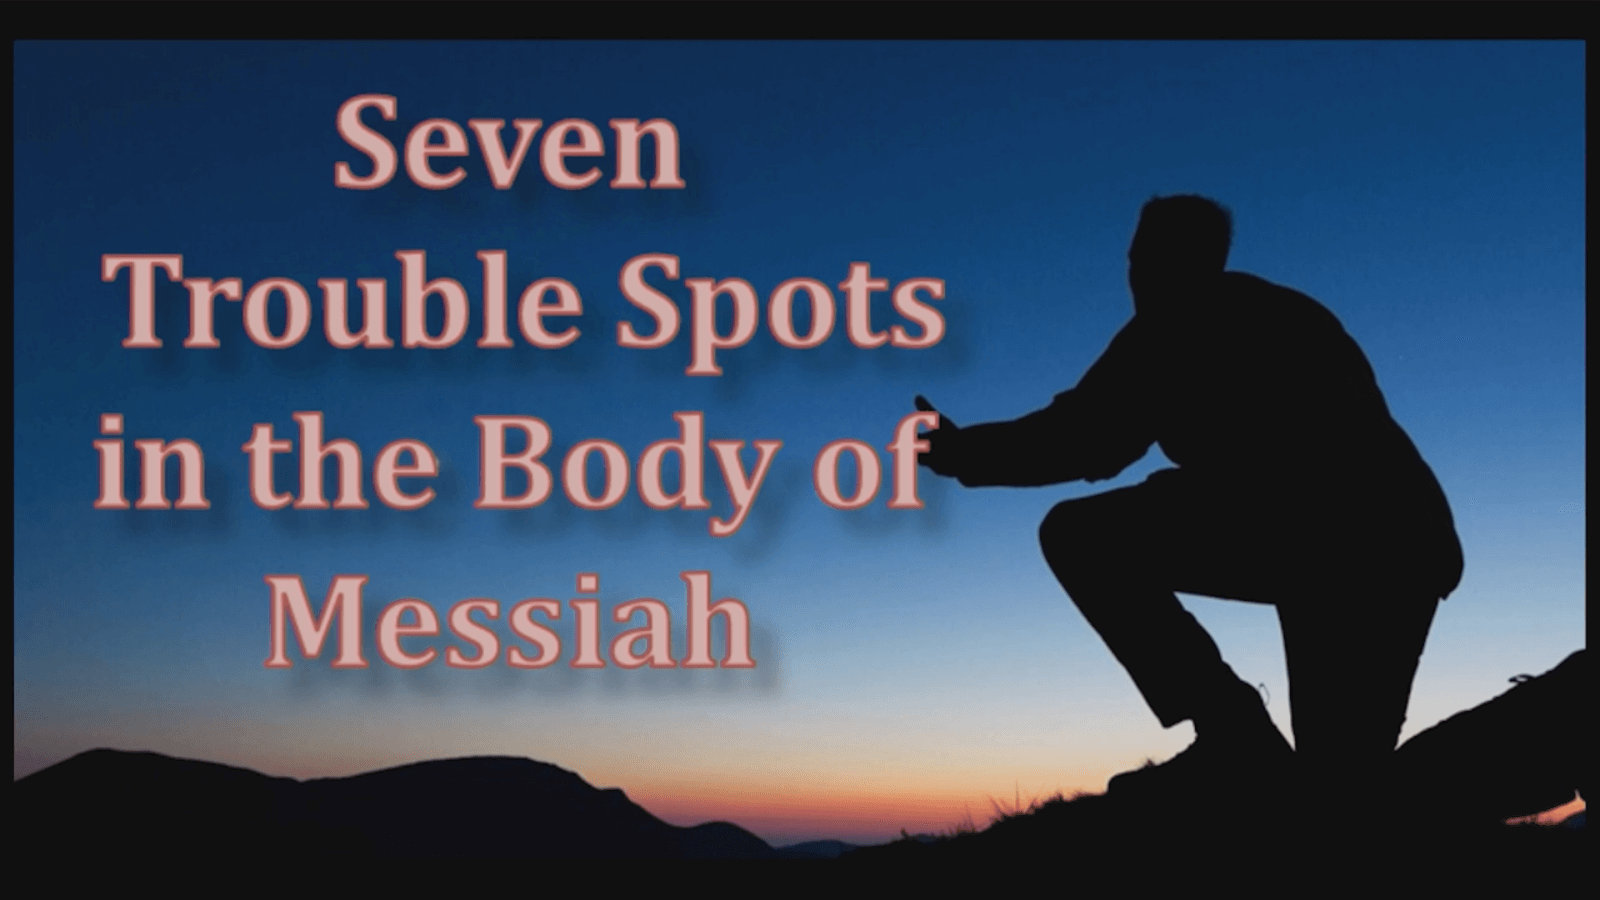 7 Trouble Spots in the Body of Messiah